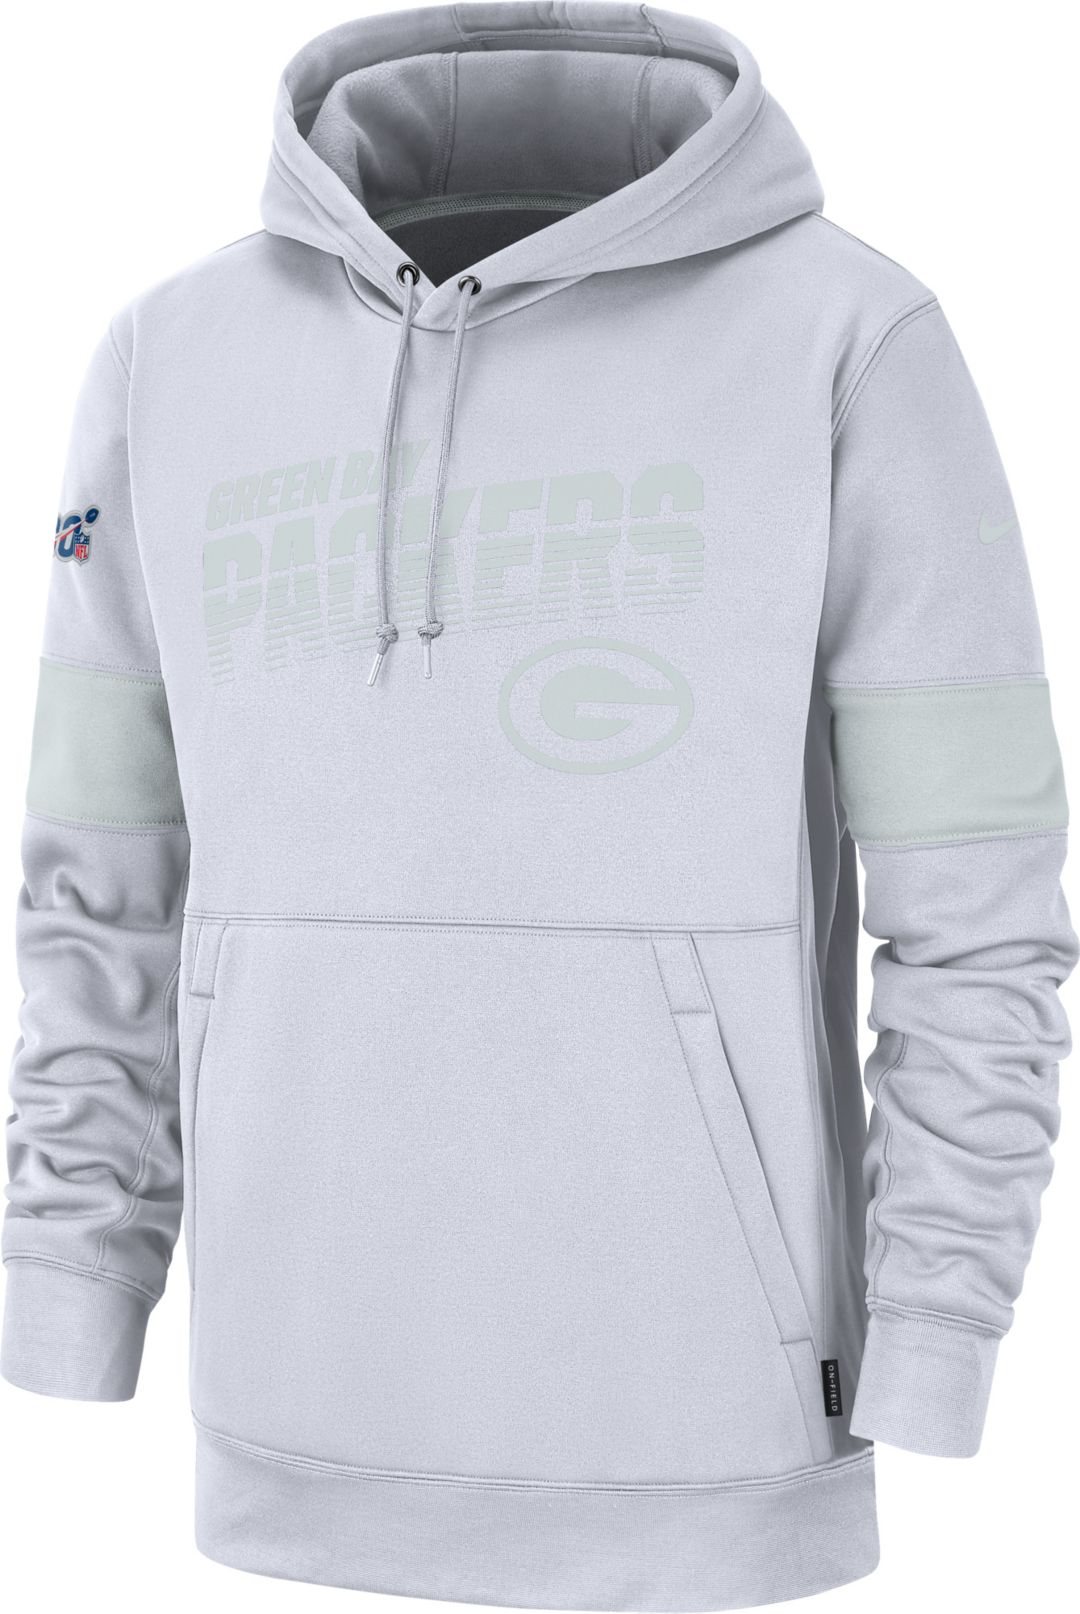 58d1eaad Nike Men's Green Bay Packers 100th Sideline Therma-FIT Pullover White Hoodie